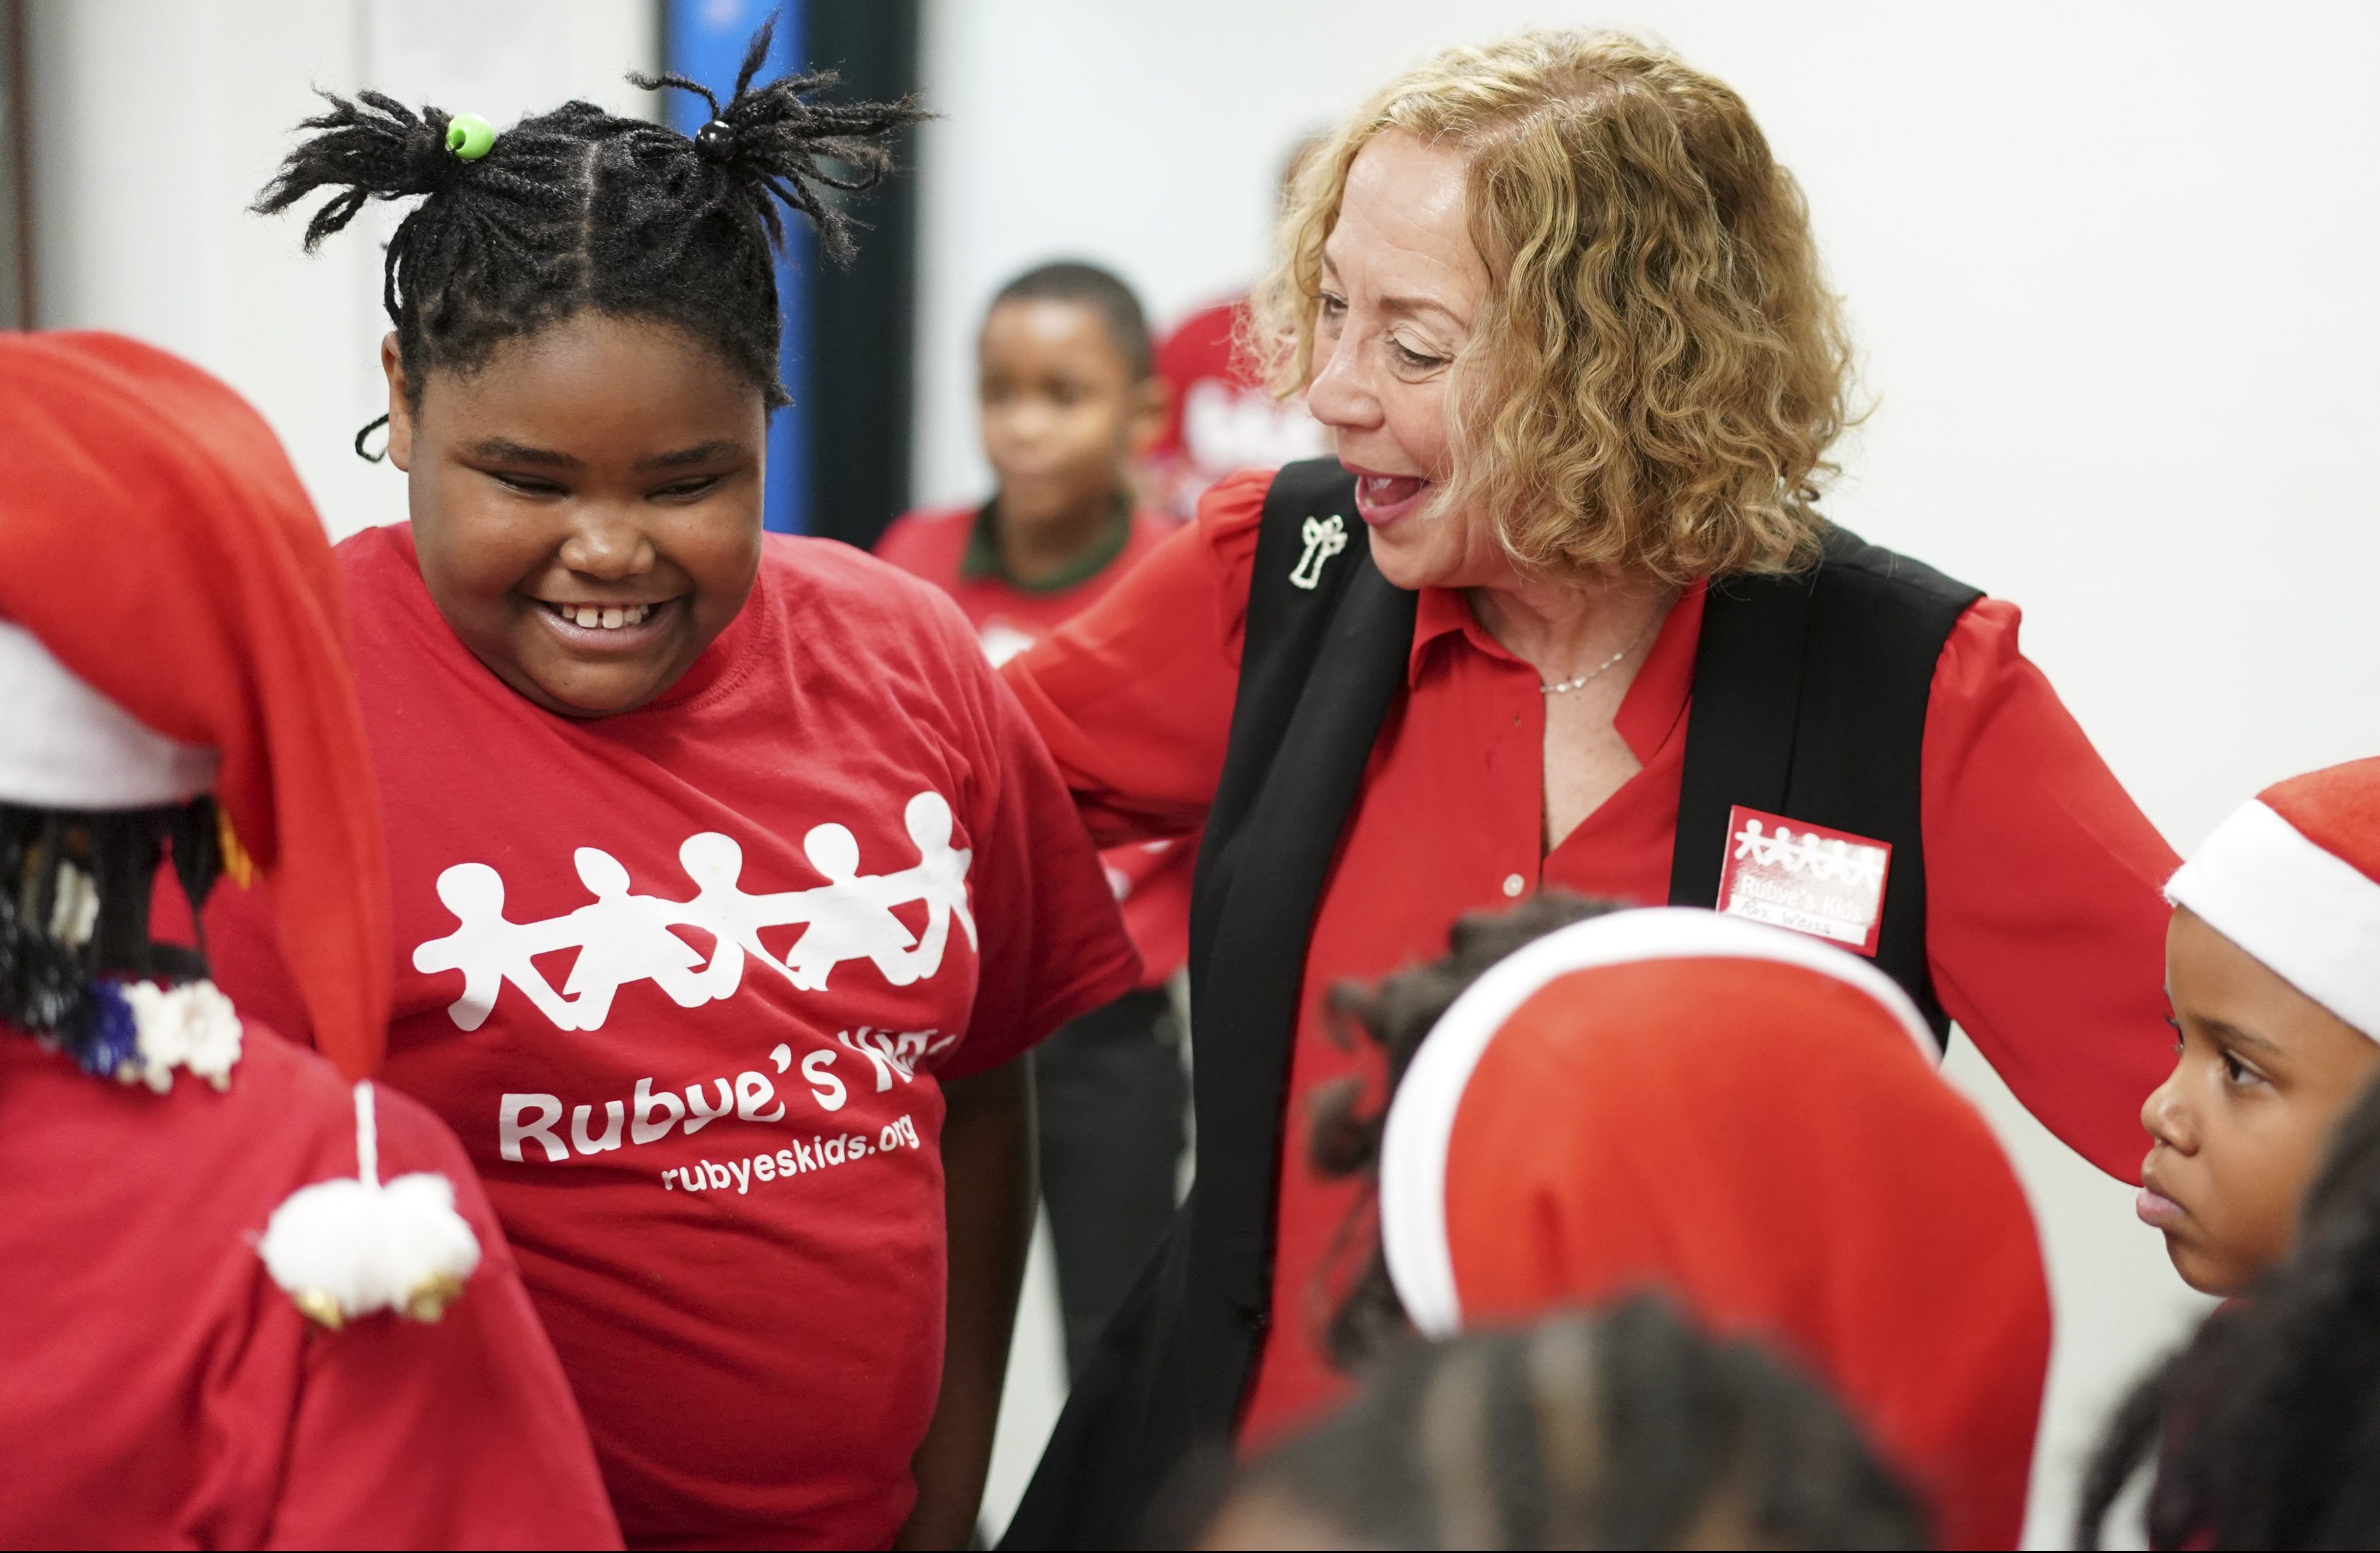 Rubye´s Kids founder Roz Weiss, right, talks with children during a Christmas Party hosted by Rubye´s Kids, Friday Dec. 15, 2017, at the Richard Wright Elementary School in North Philadelphia. Joseph Kaczmarek/ For the Inquirer